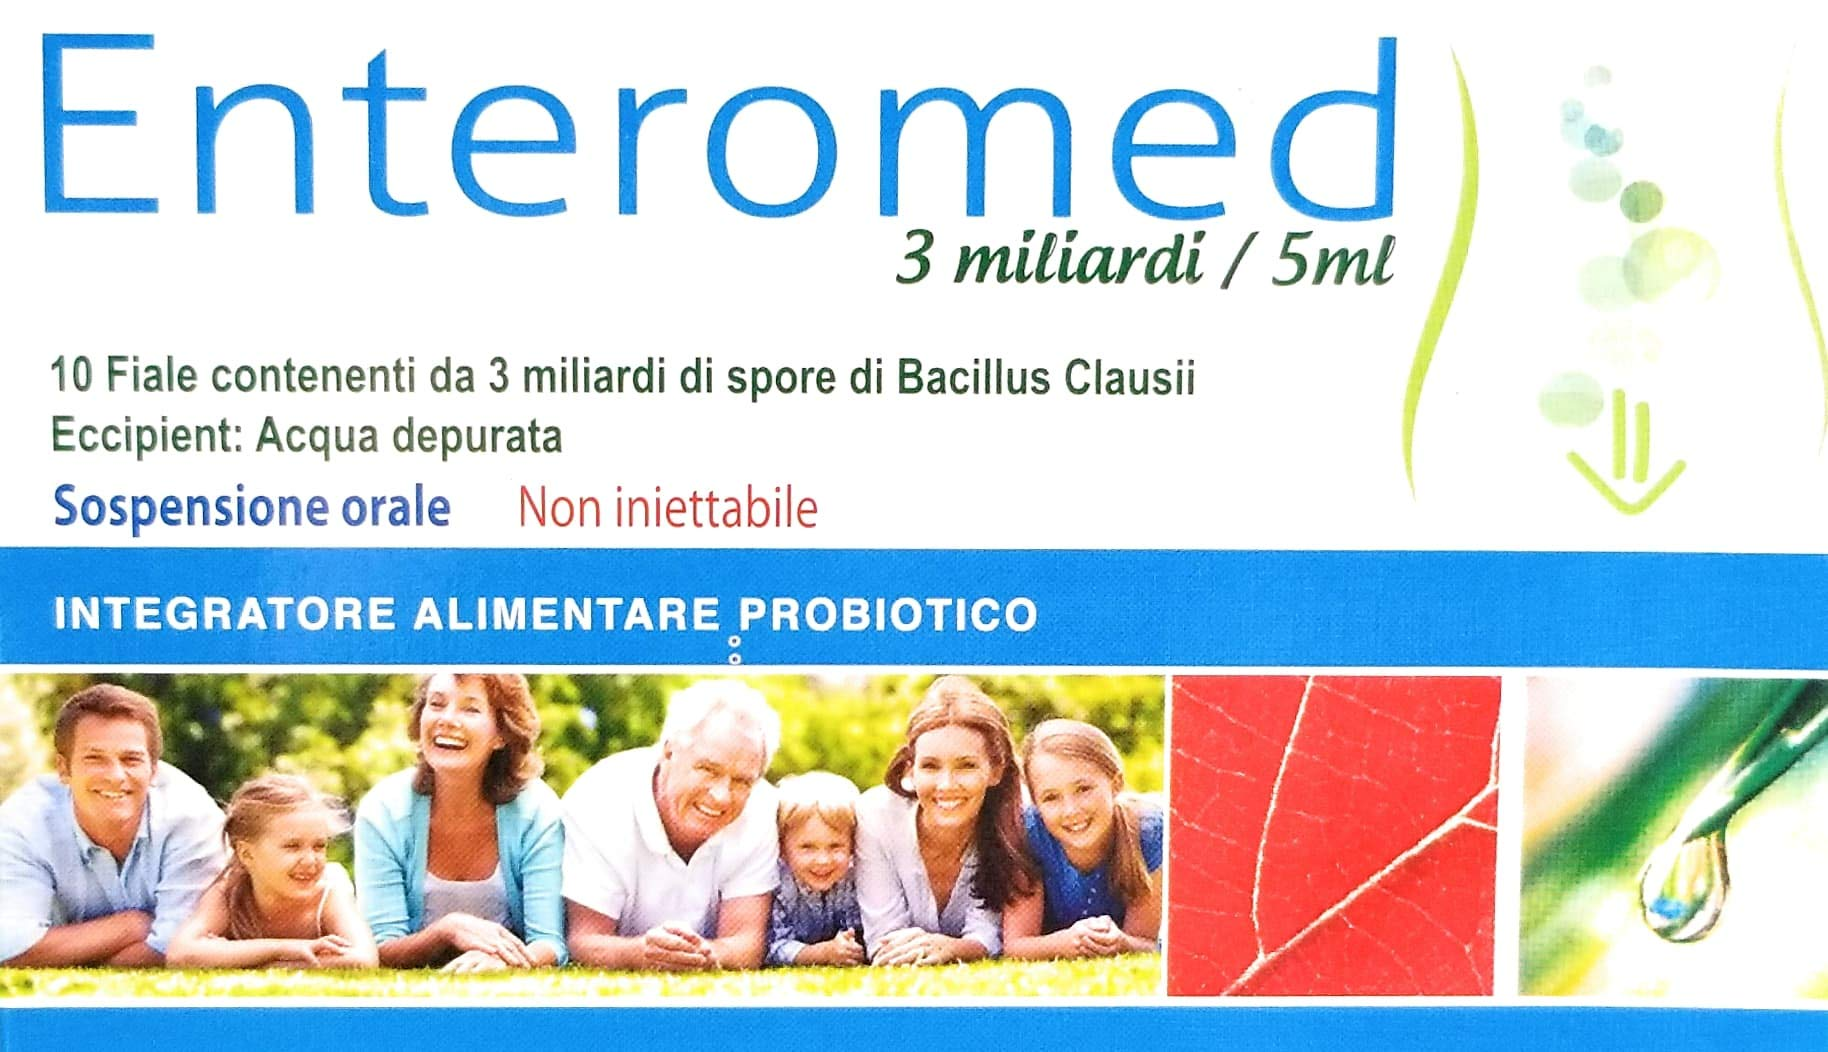 Enteromed, Ultimate Probiotic of 3 Milliards Live Spores of Bacillus Clausii in vials of 5ml Single-use,10 vials, Improve Digest Health, Boost Immunity, Prevent Diseases, Slows ageing. by ION Pharmaceutical